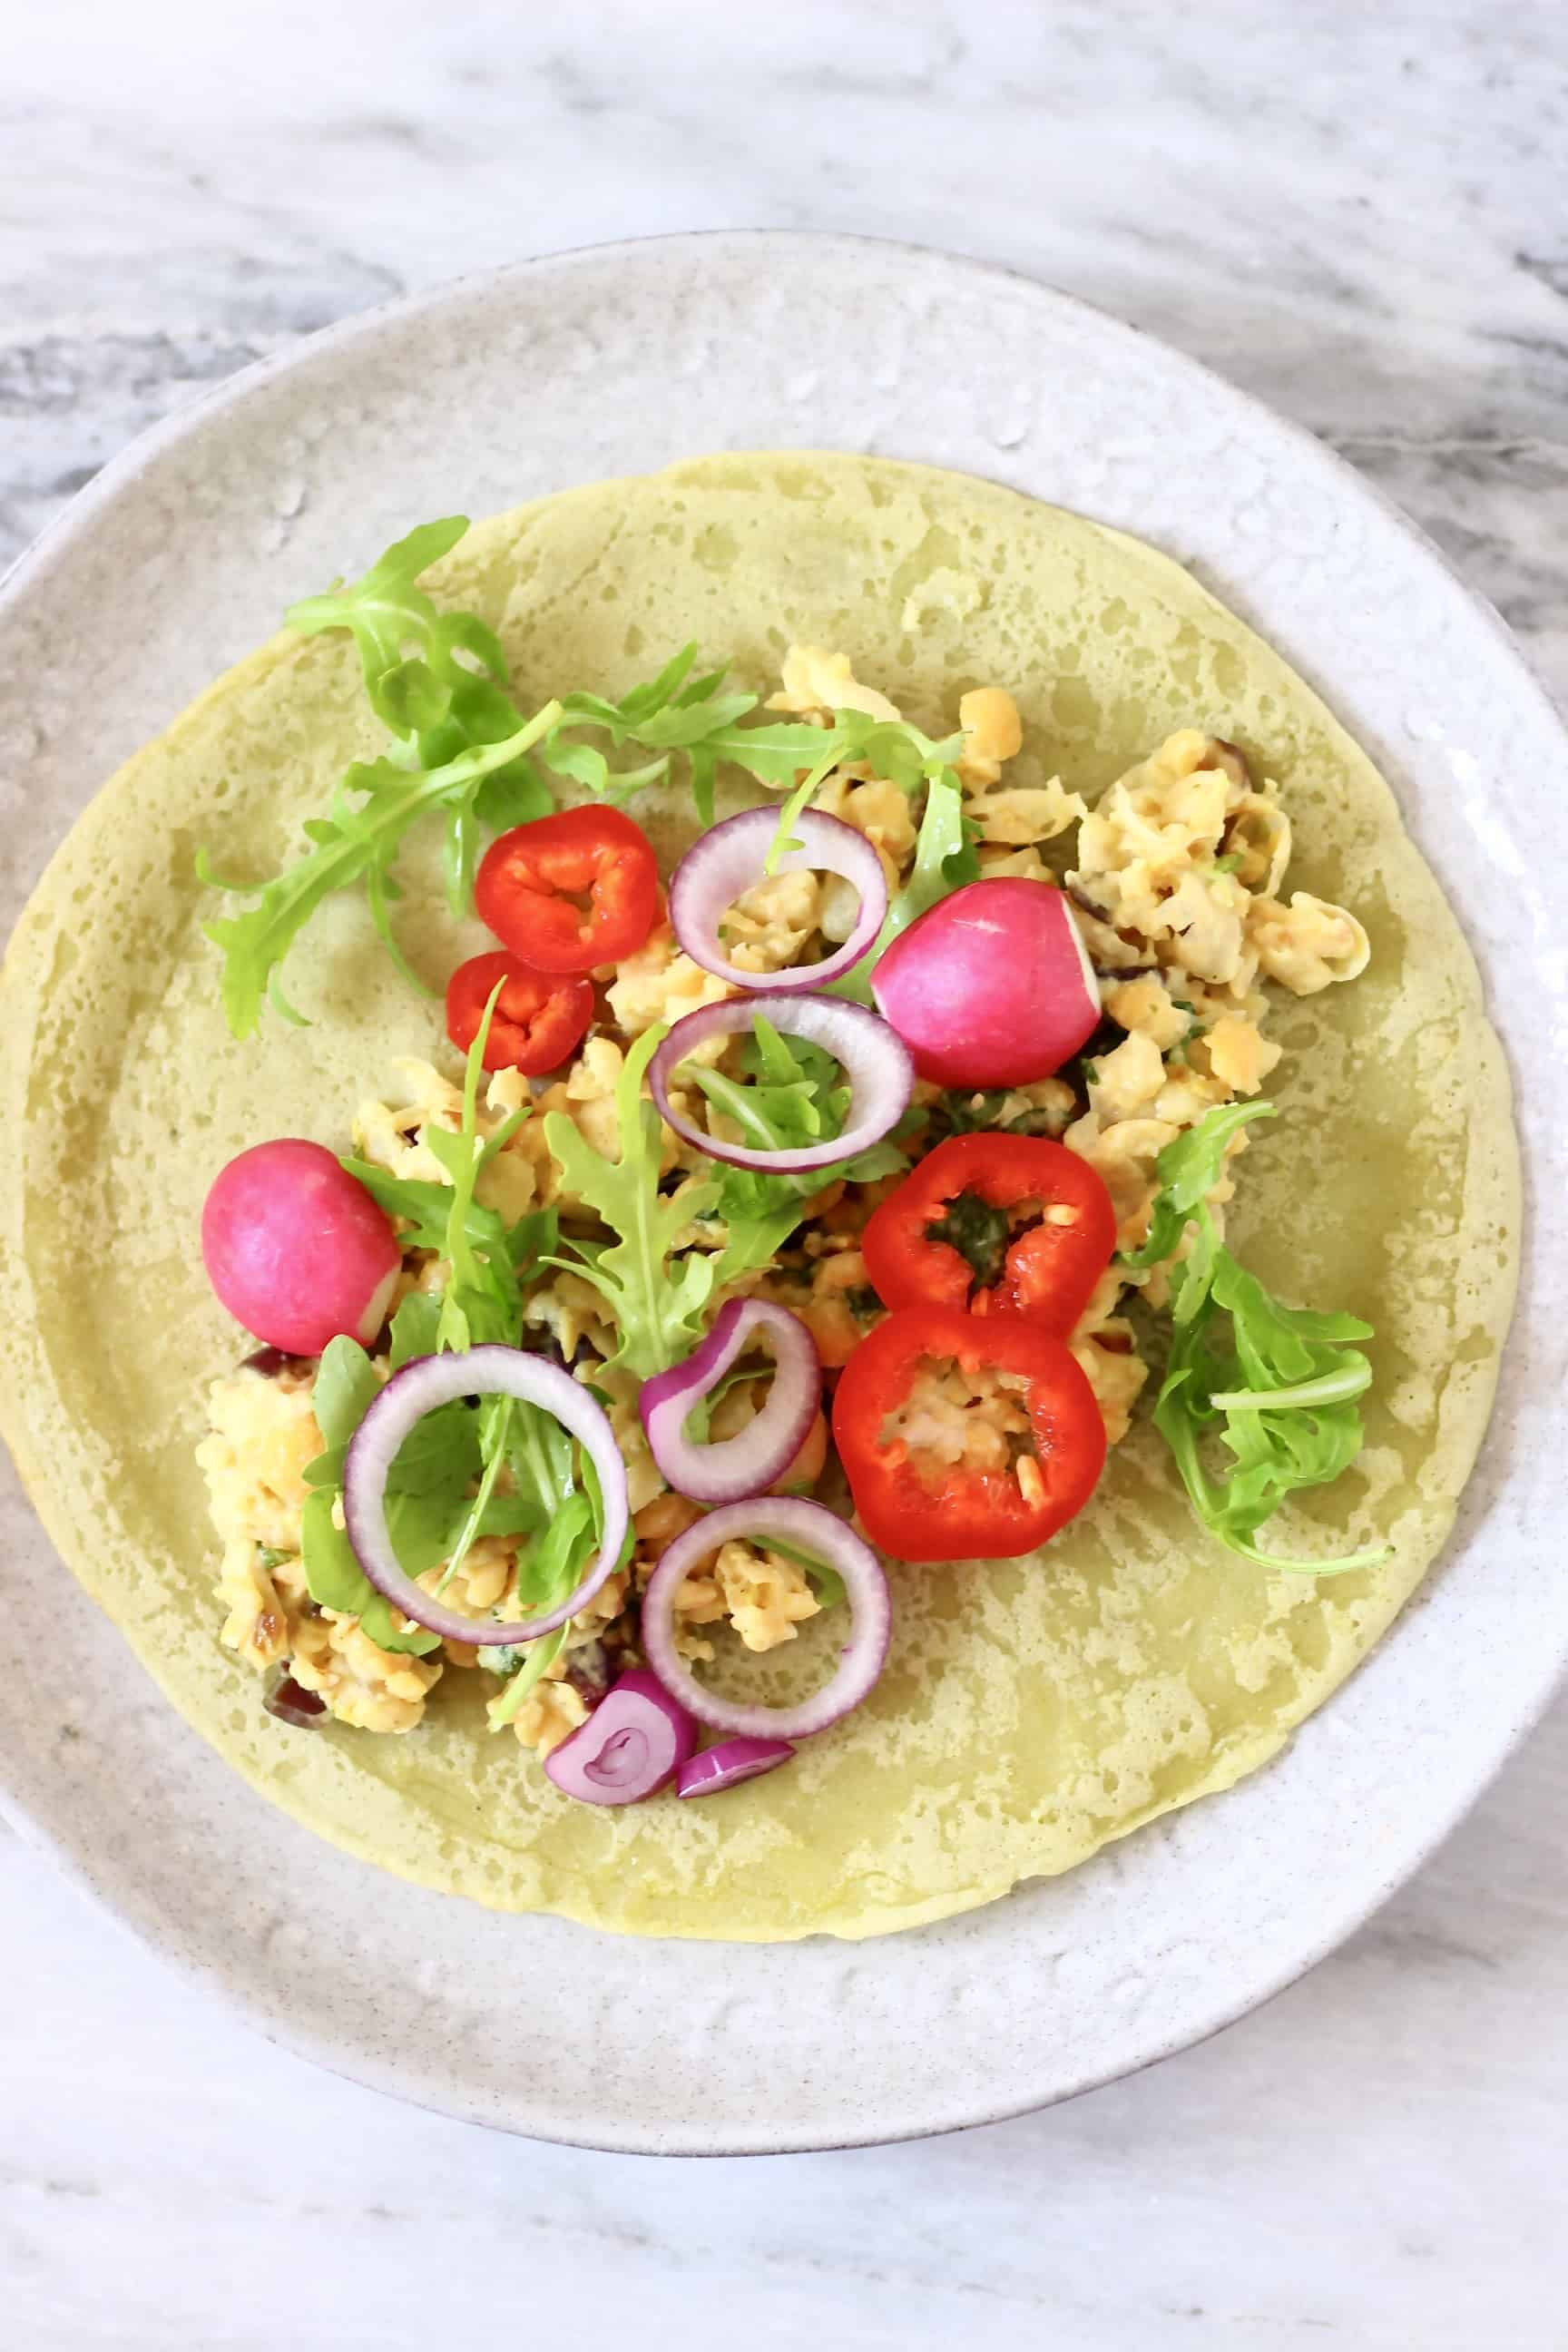 A green wrap on a plate, topped with chickpeas and salad